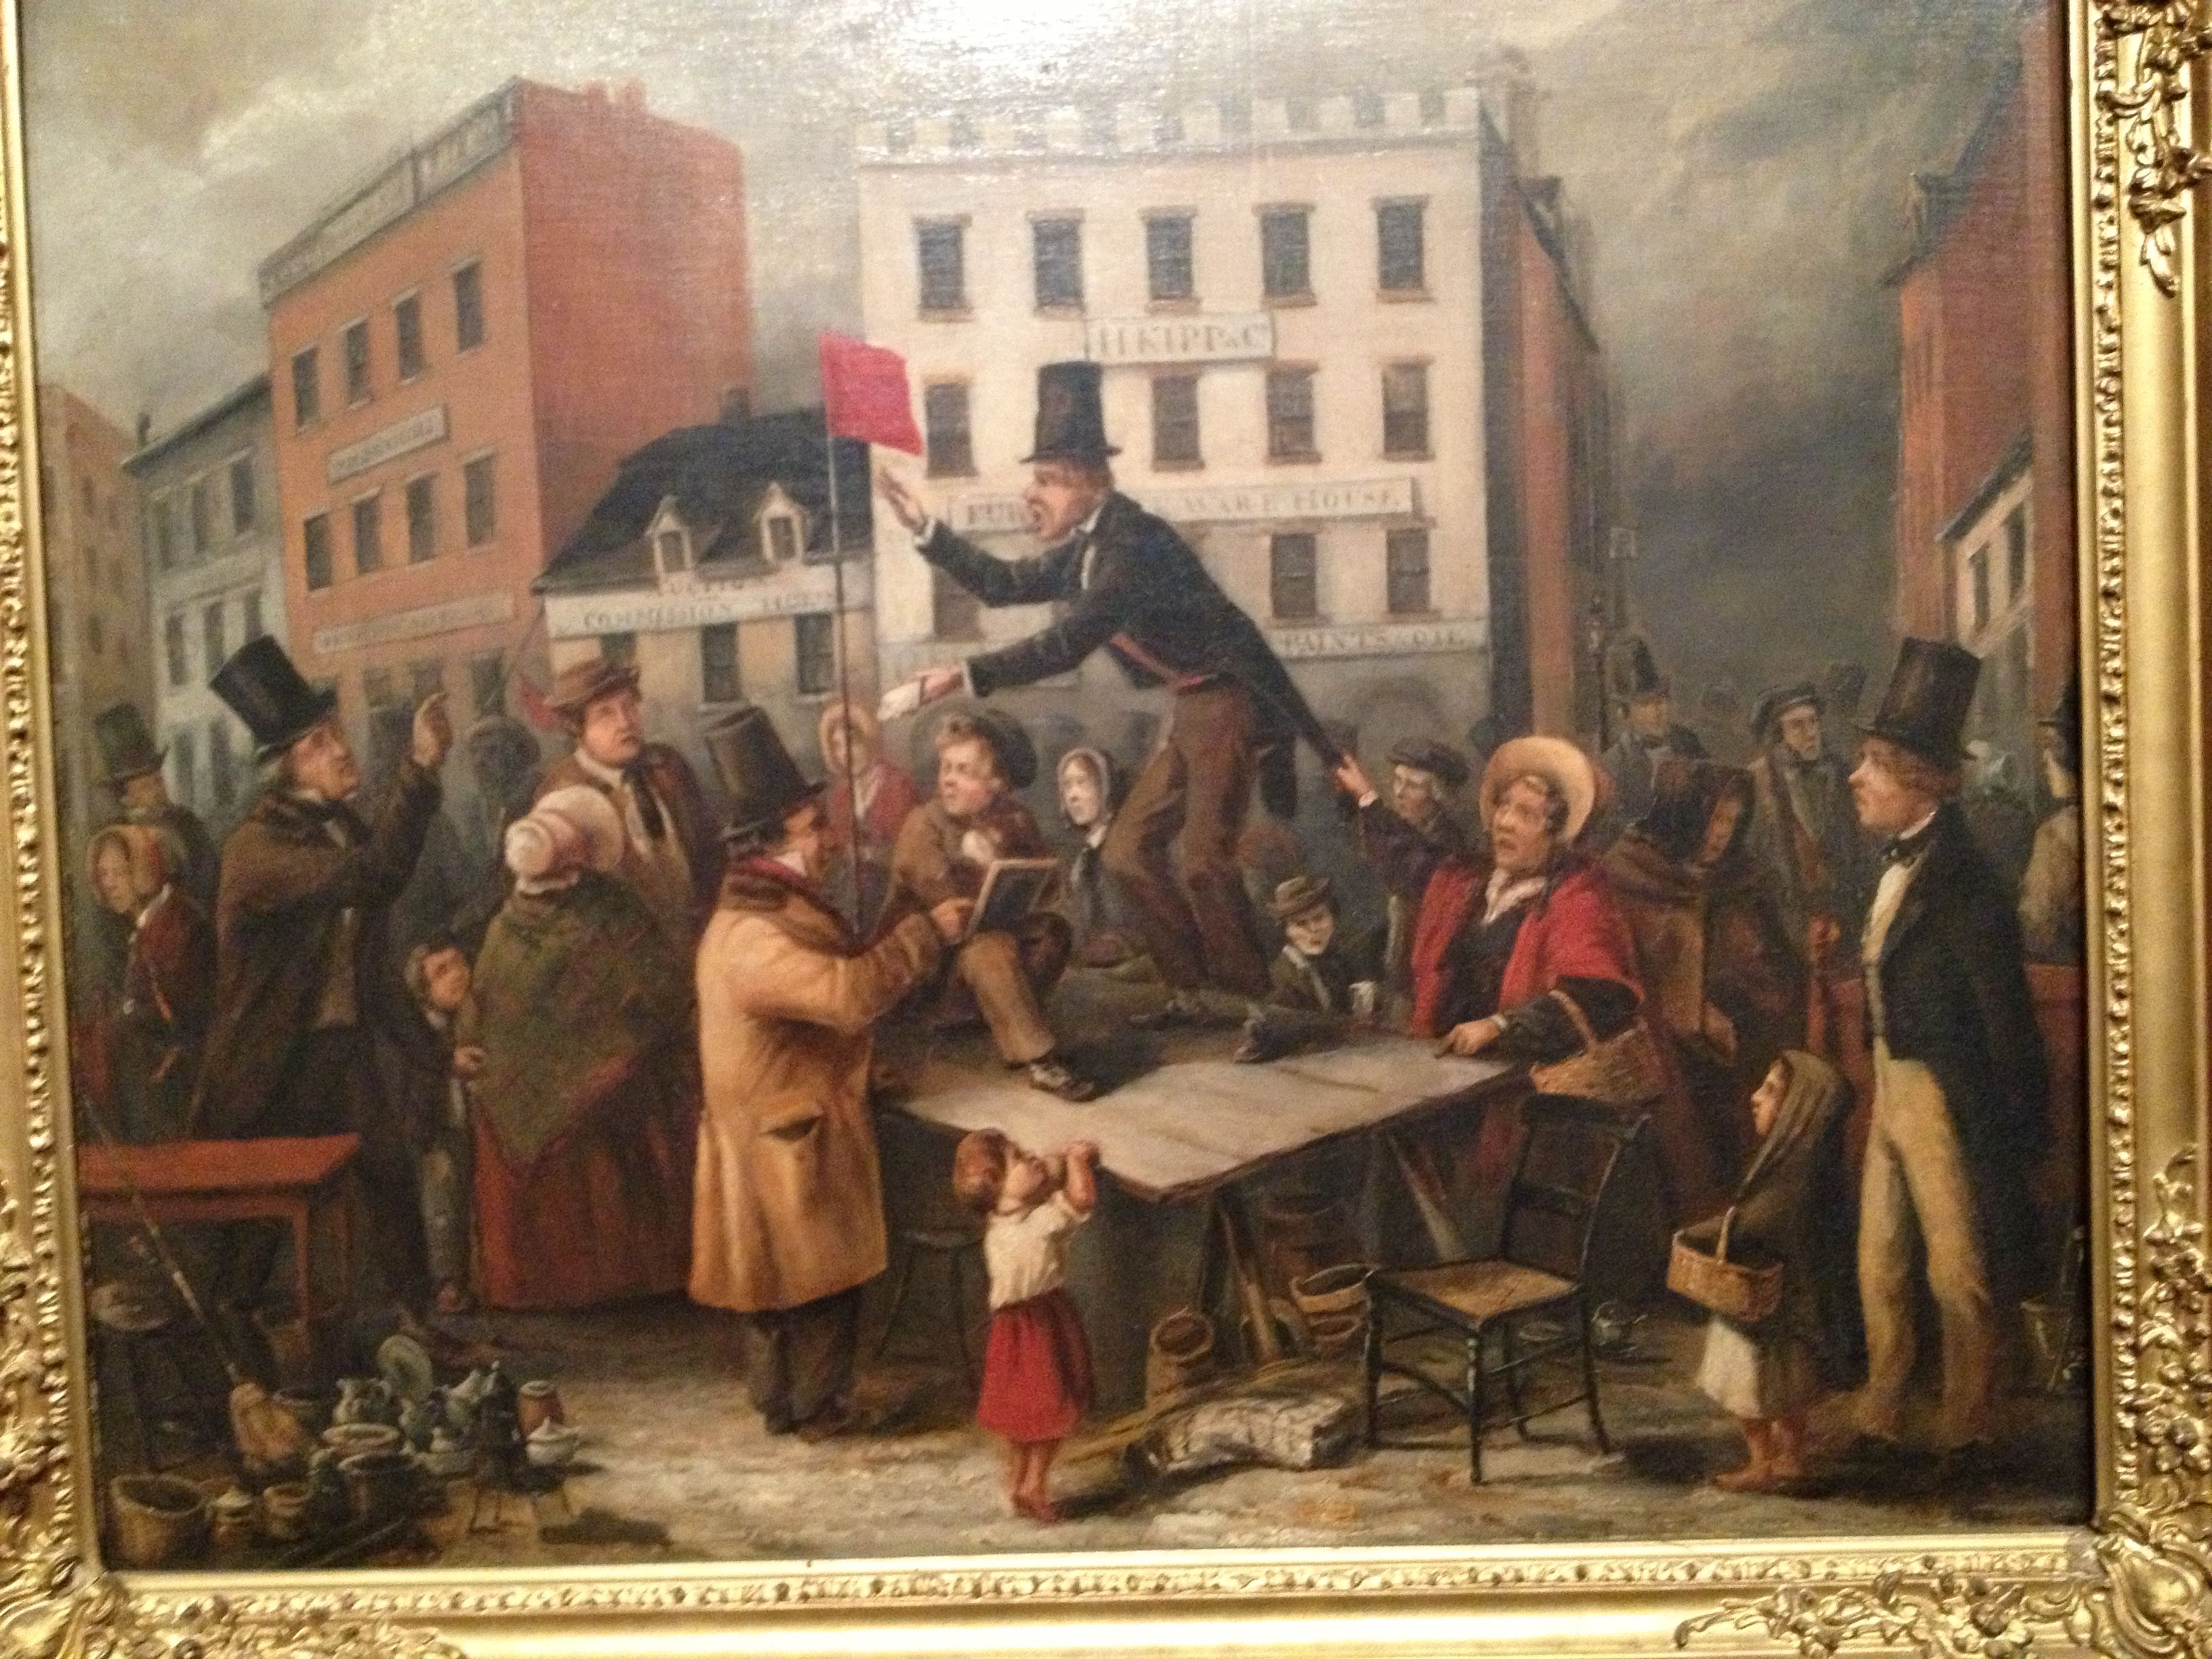 Auction in chatham st 1843 painting art scenes